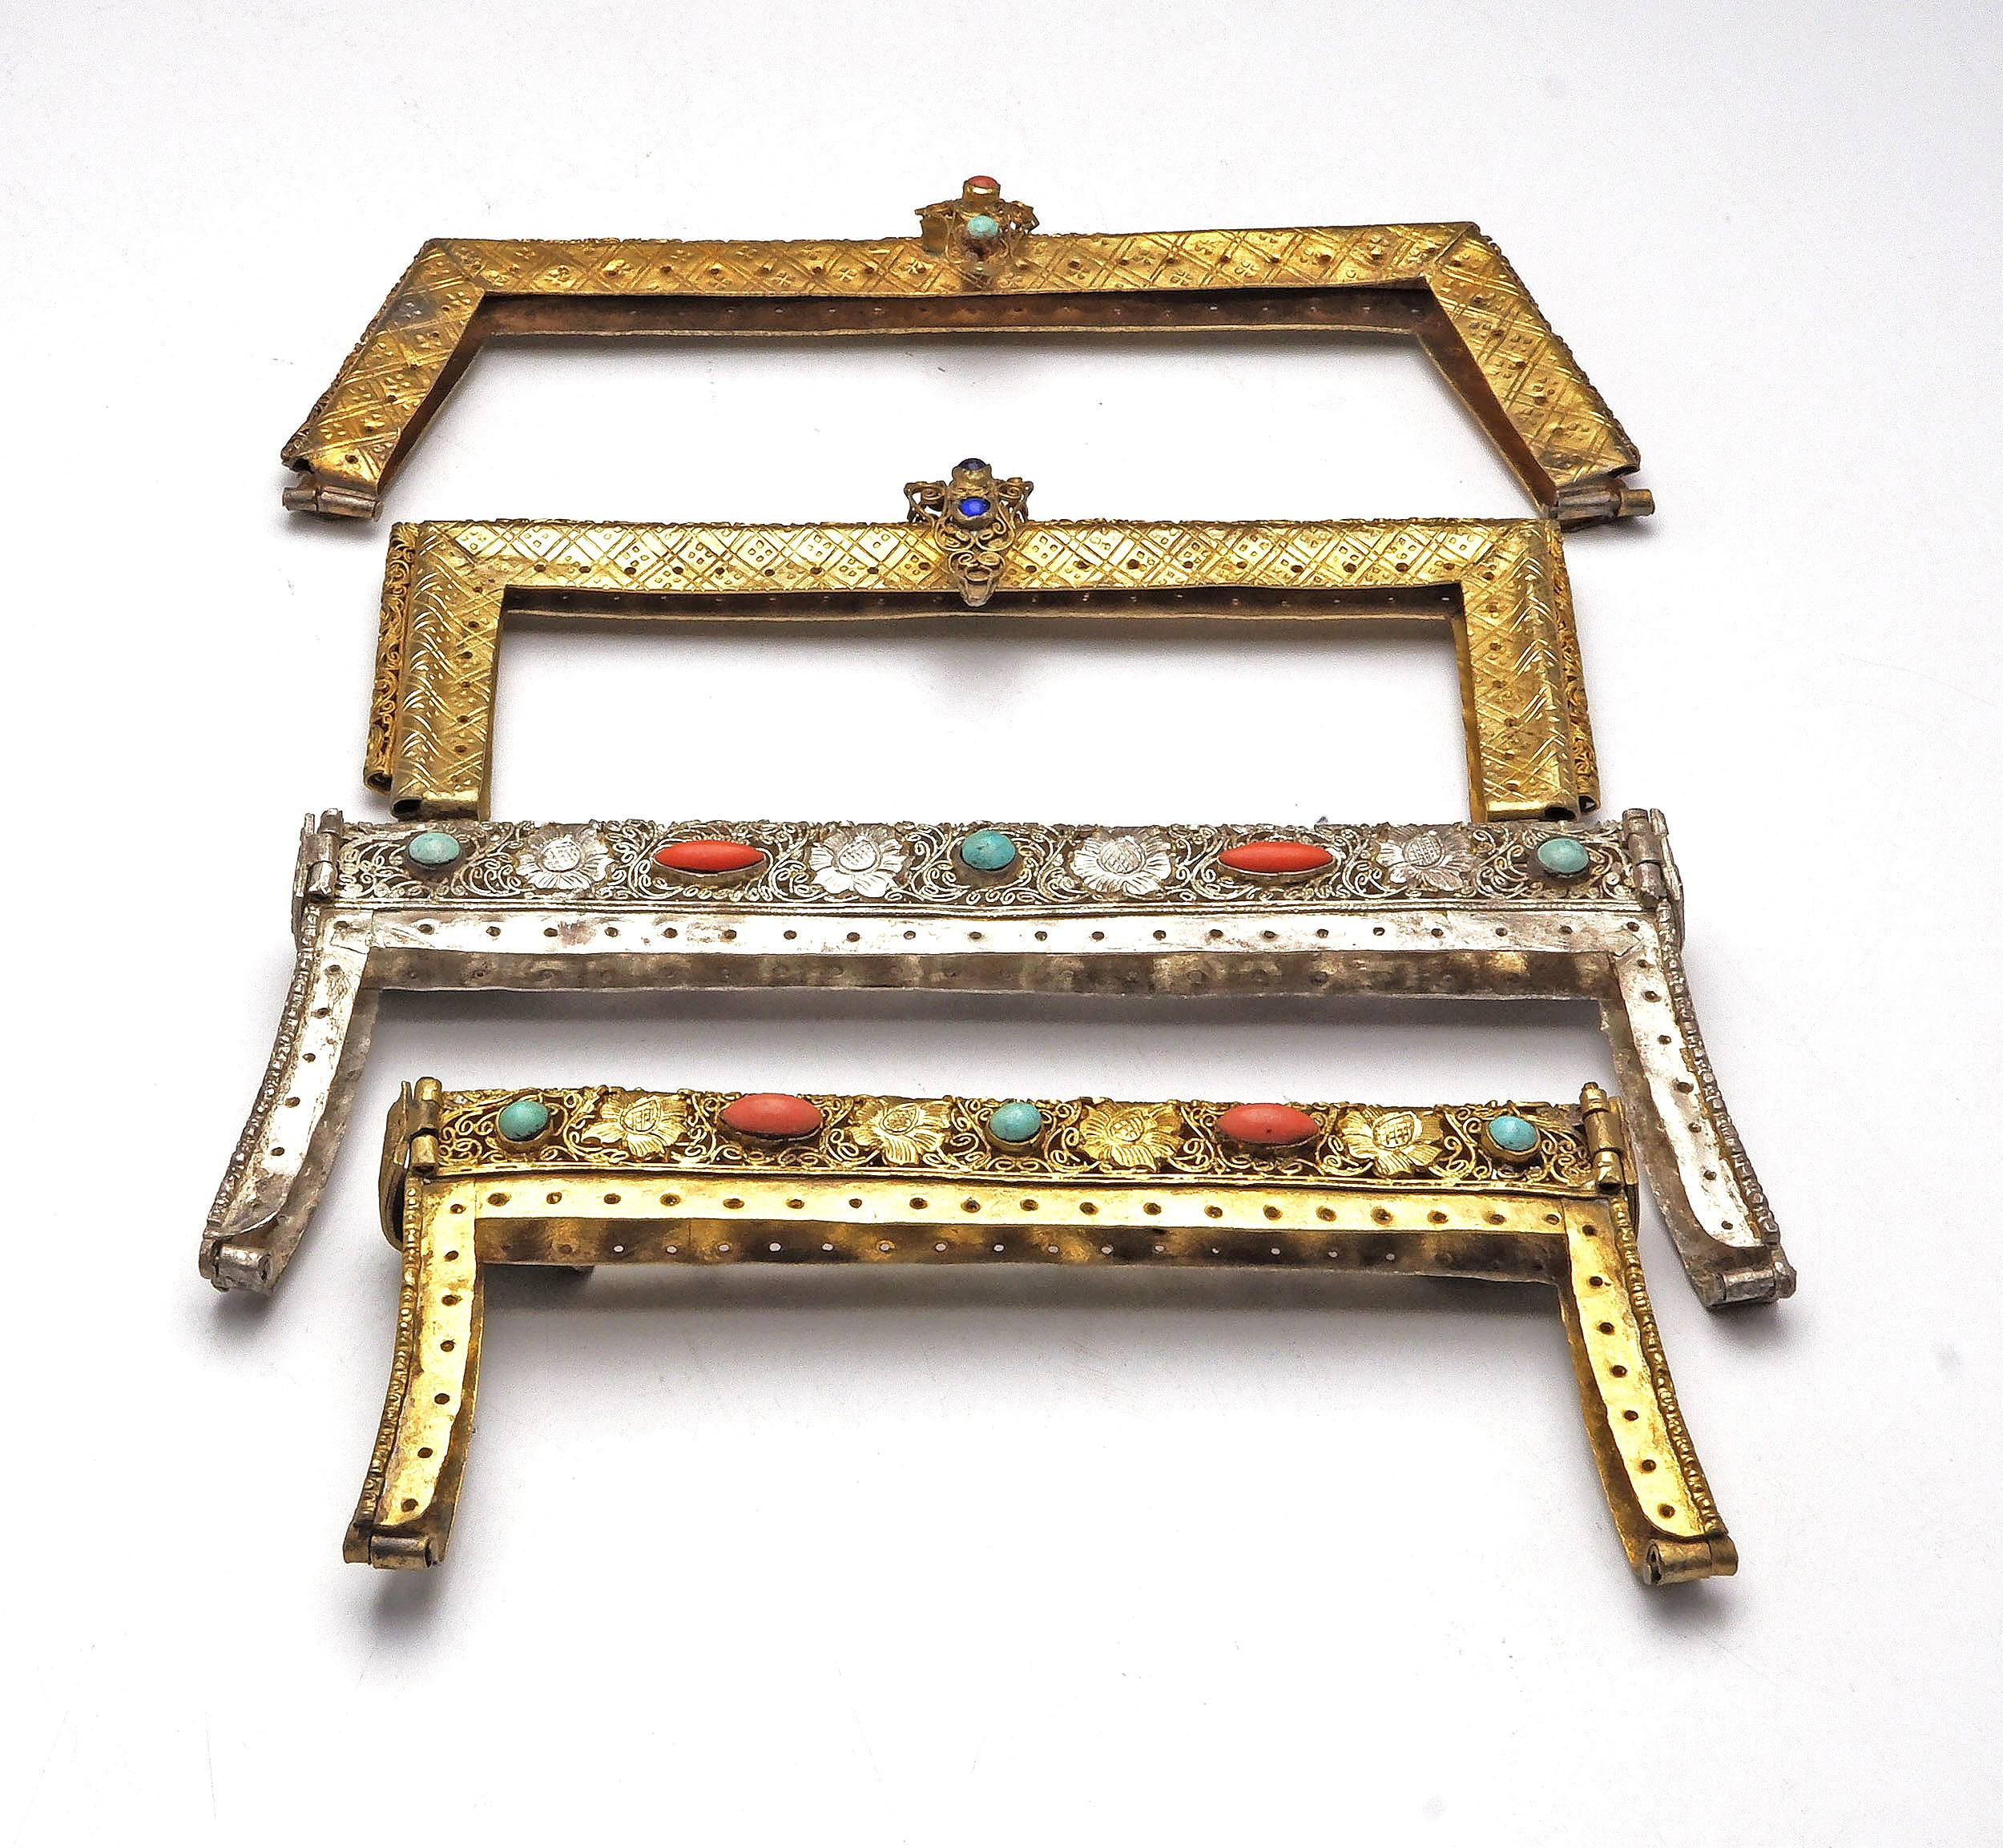 'Four Antique North Indian or Tibetan Silver and Silver Gilt Purse Clasps with Semi Precious Inlays Including Turquoise and Coral'